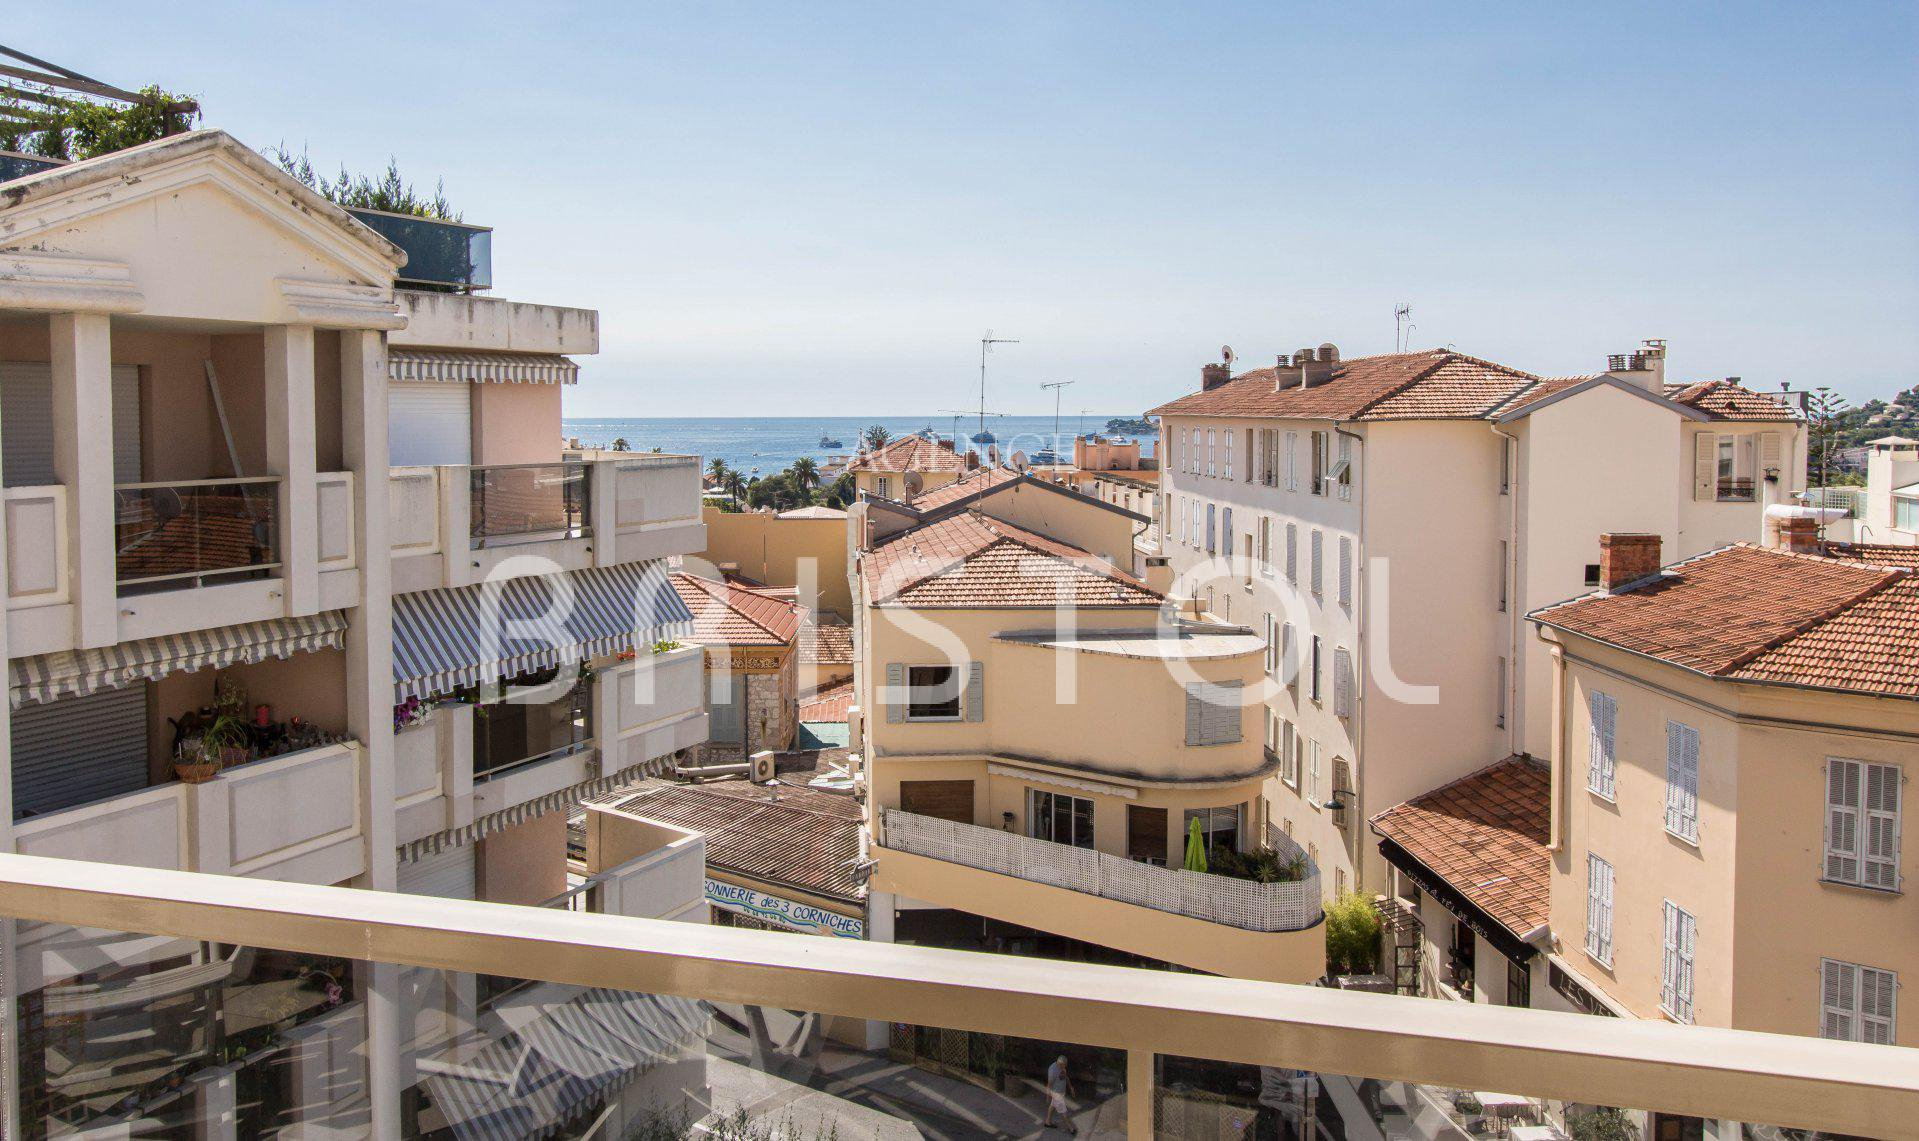 Luxury 3 bedrooms apartment for sale in Beaulieu sur Mer